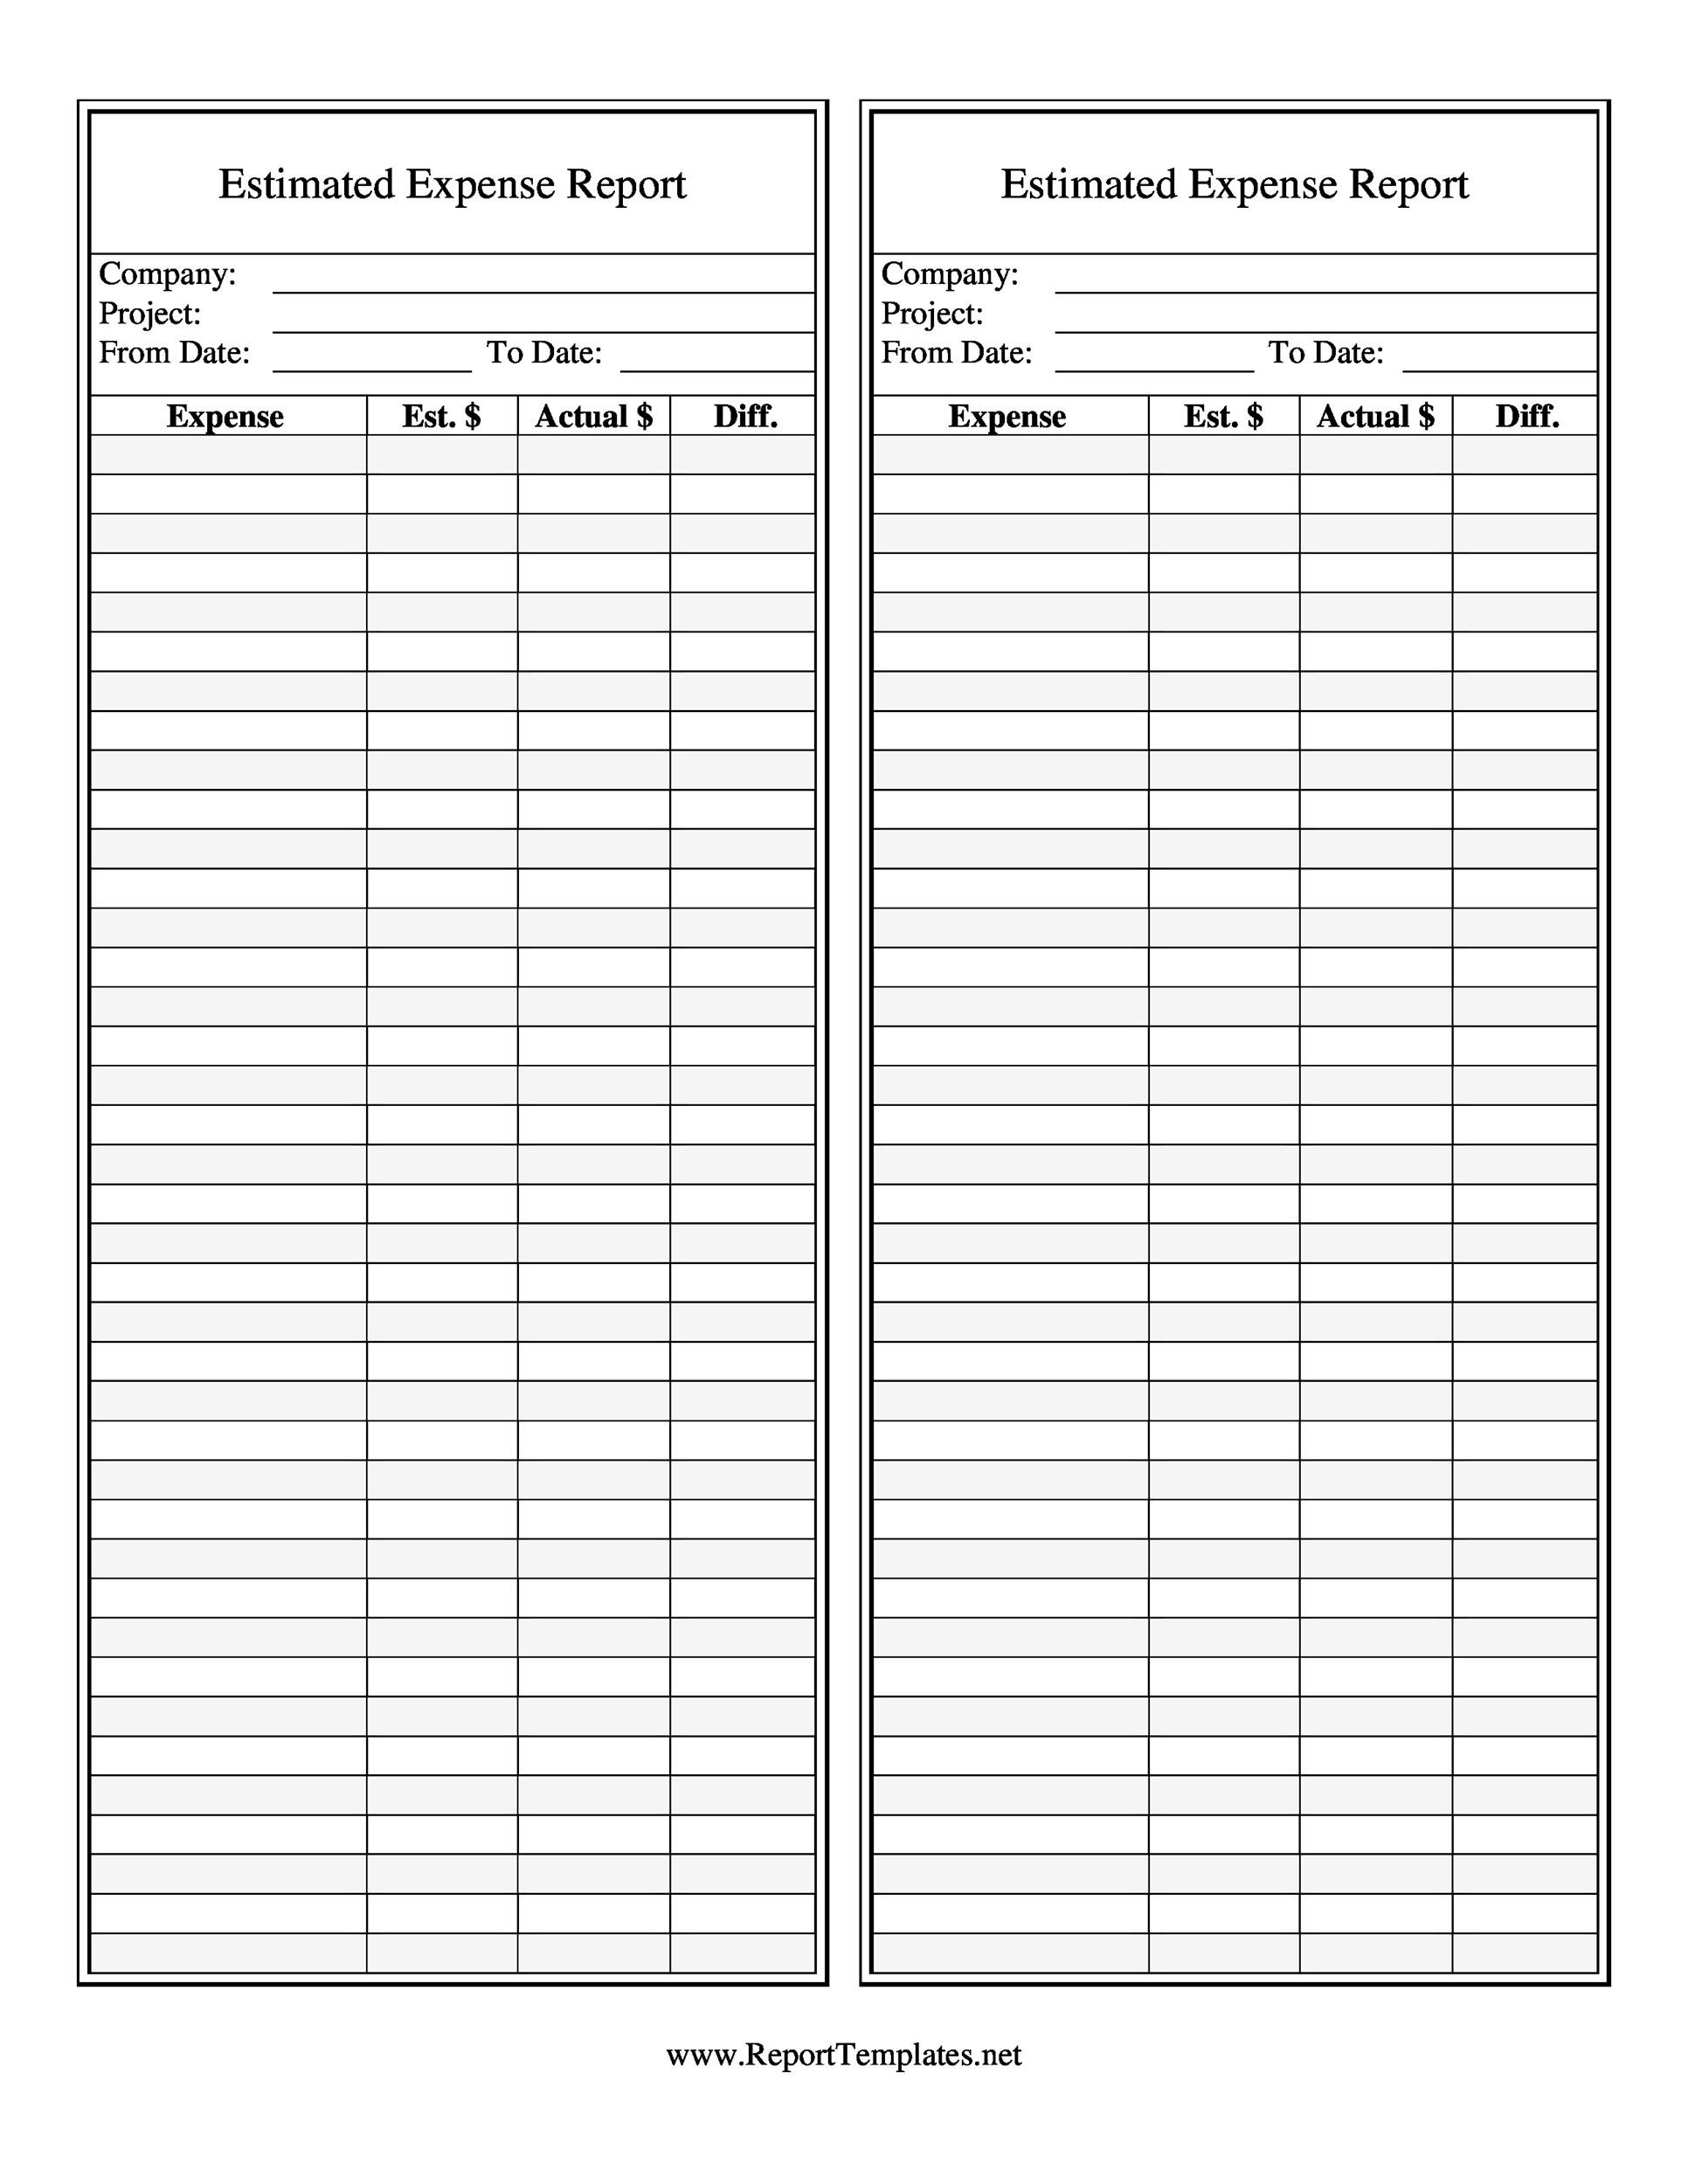 Free expense report template 07